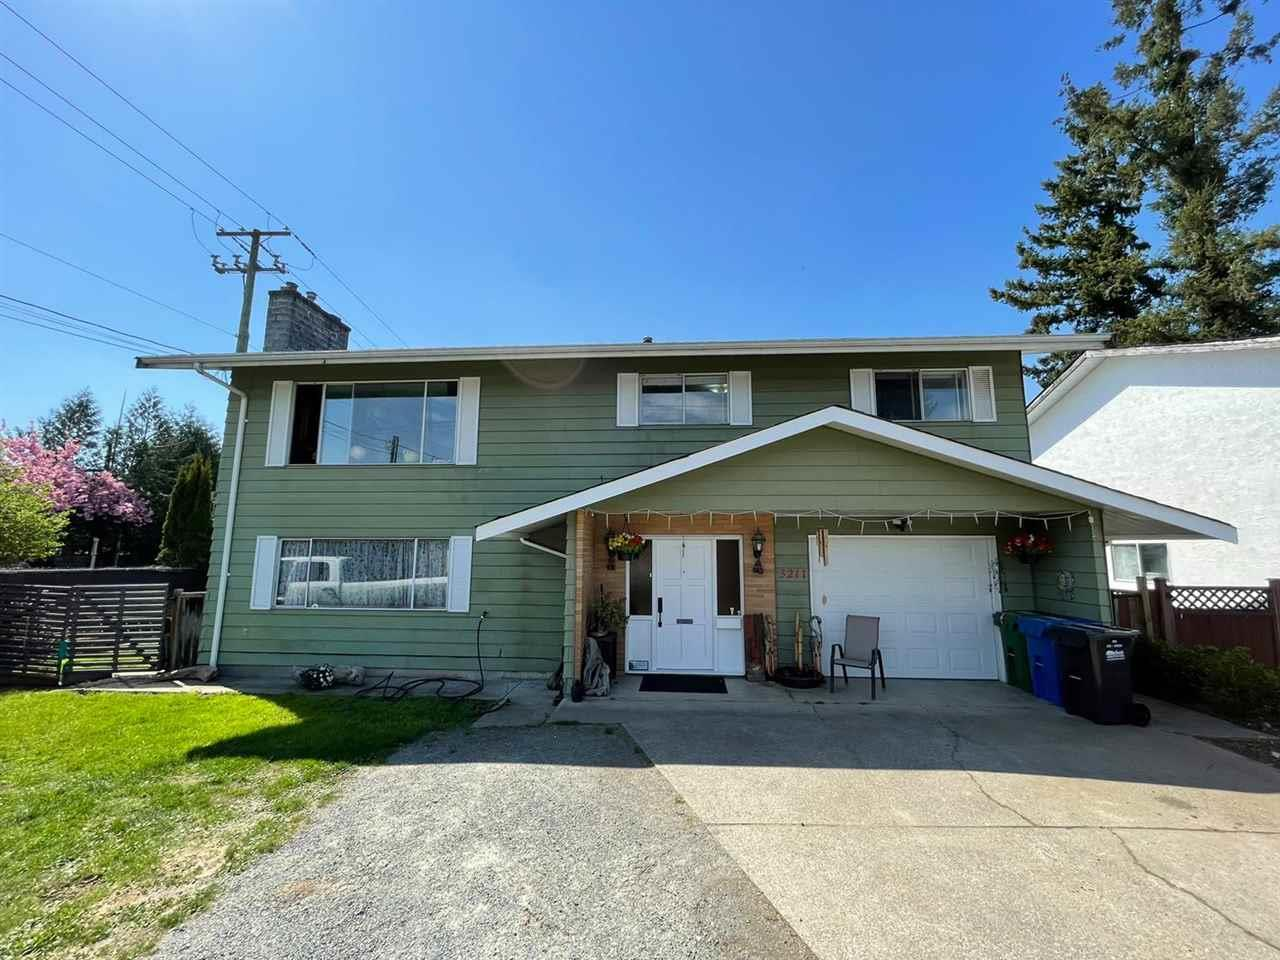 3211 CLEARBROOK ROAD, Abbotsford, British Columbia, Canada V2T4N9, 4 Bedrooms Bedrooms, Register to View ,3 BathroomsBathrooms,House,For Sale,CLEARBROOK,R2569445